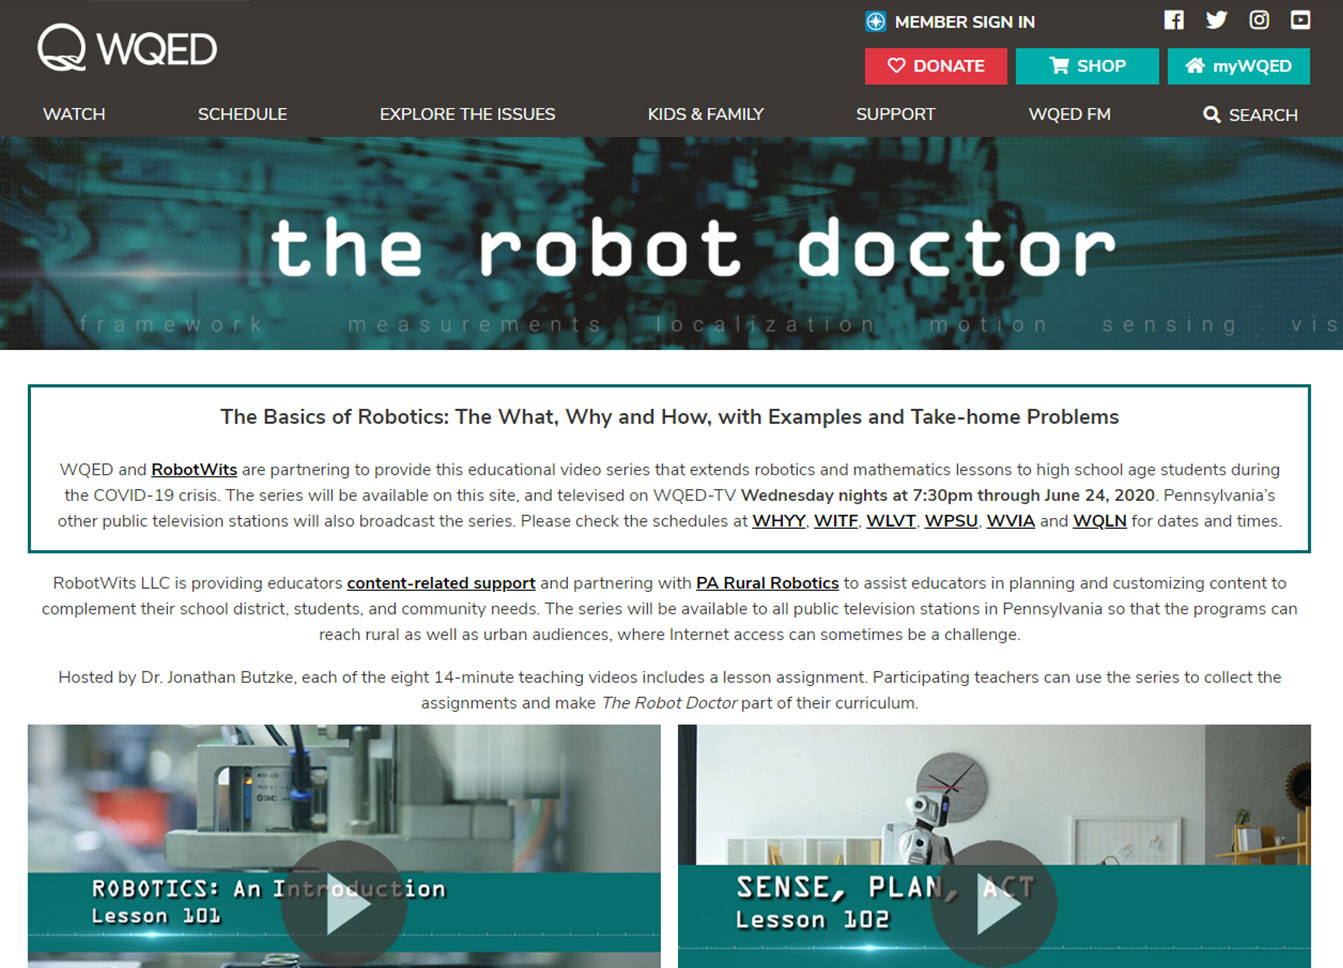 The Robot Doctor